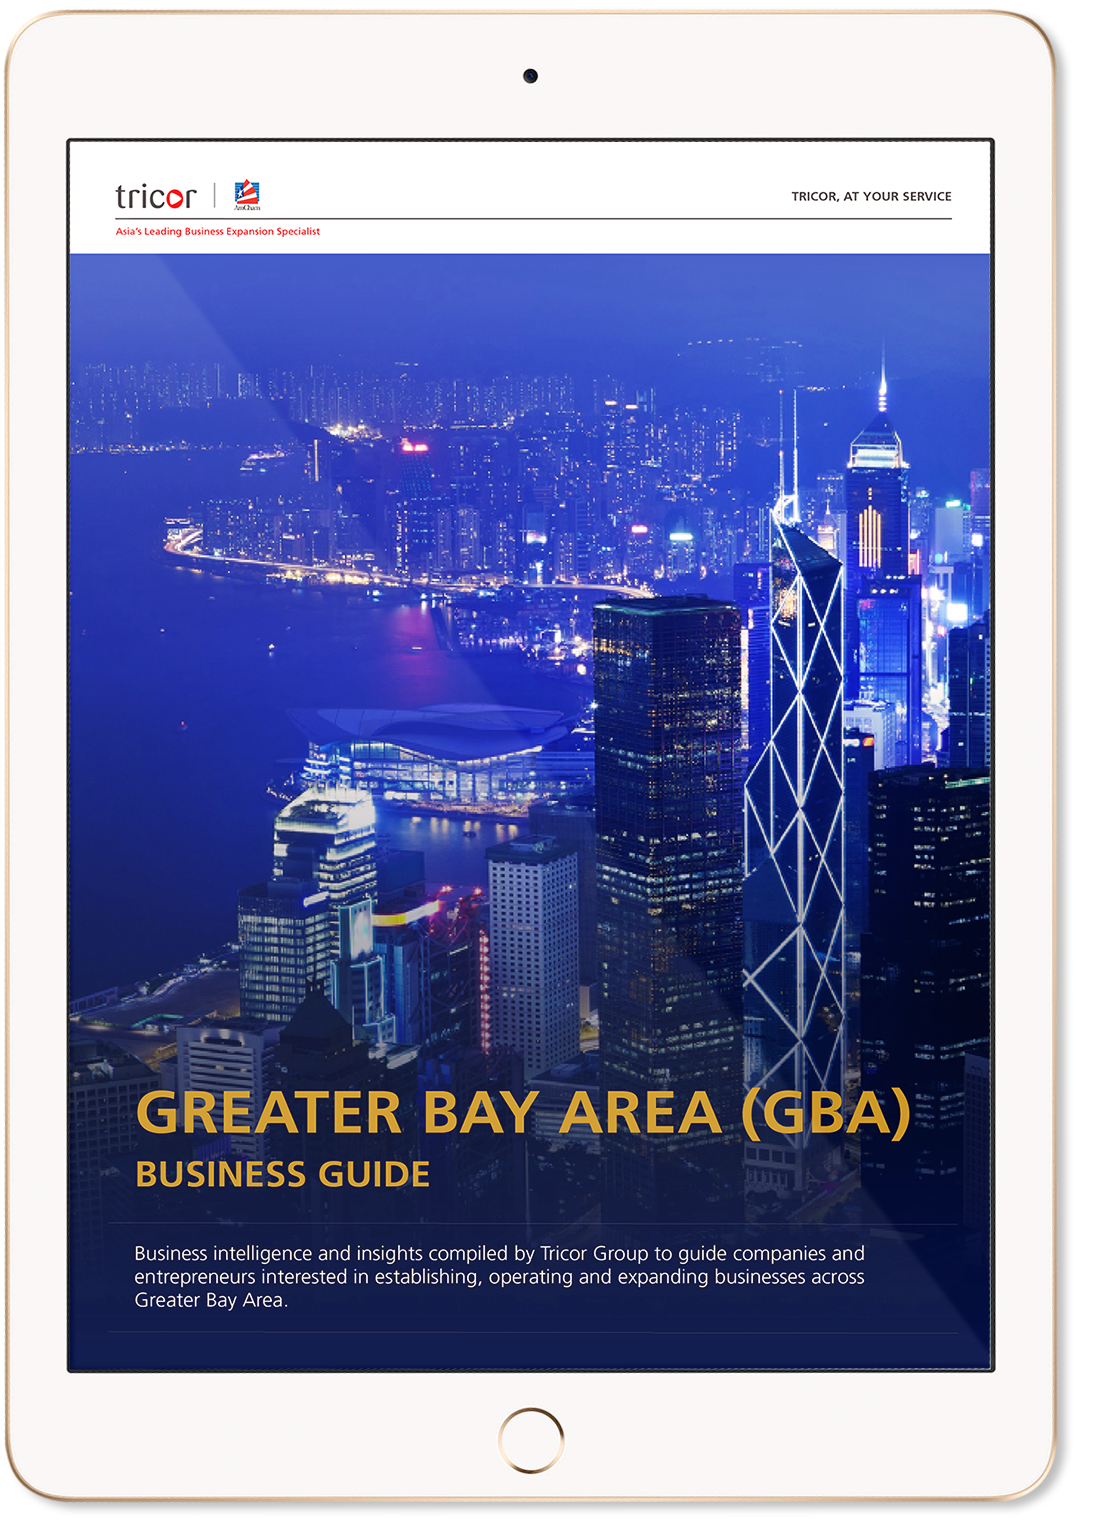 Doing business in the Greater Bay Area